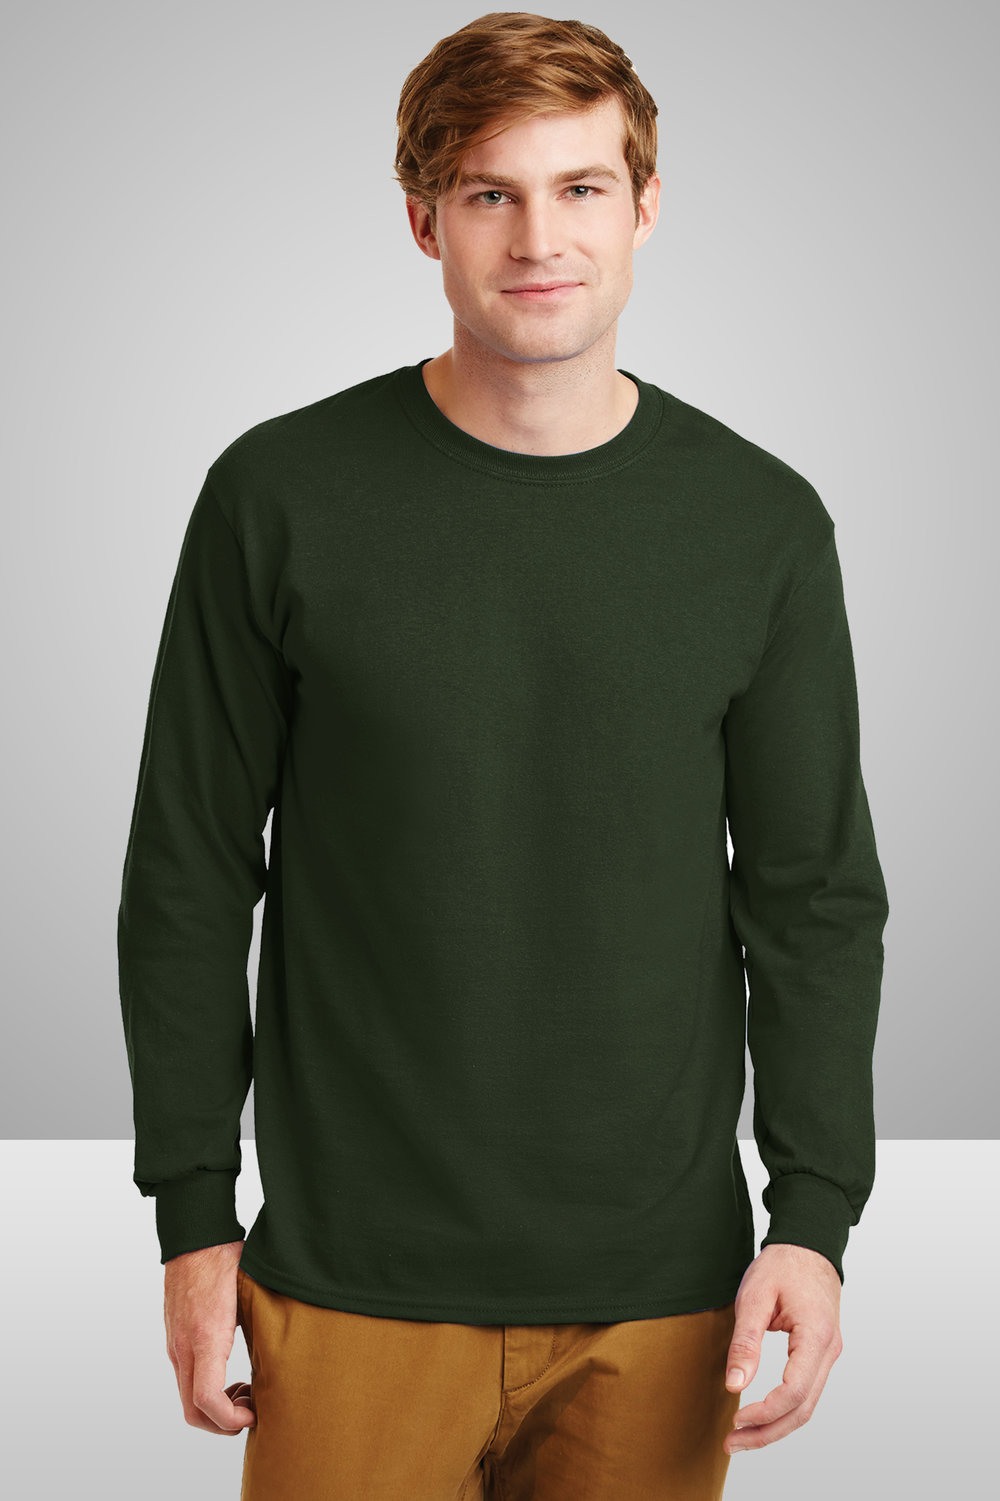 Gildan Long Sleeve Cotton Shirt    $12.09 each for 25 items one color front or back